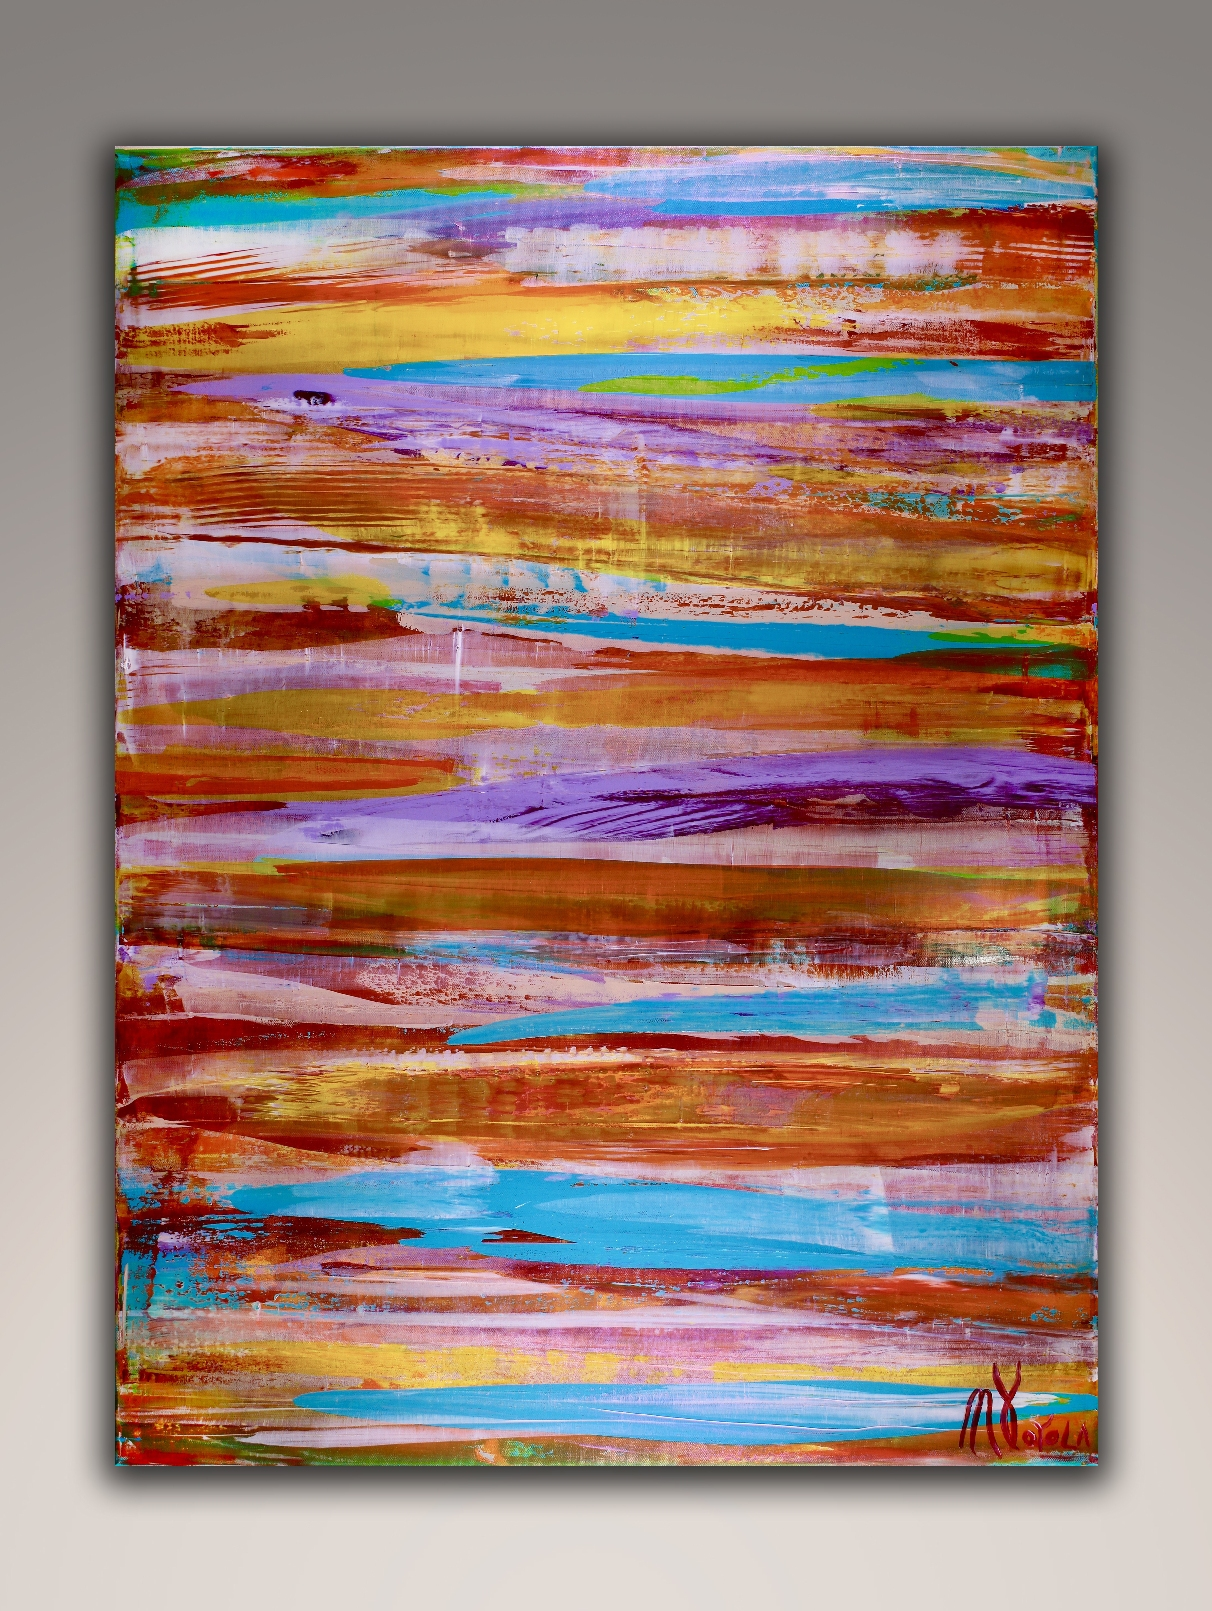 Energy Fusion 9 by Nestor Toro (2018) abstract art - Acrylic painting by Nestor Toro